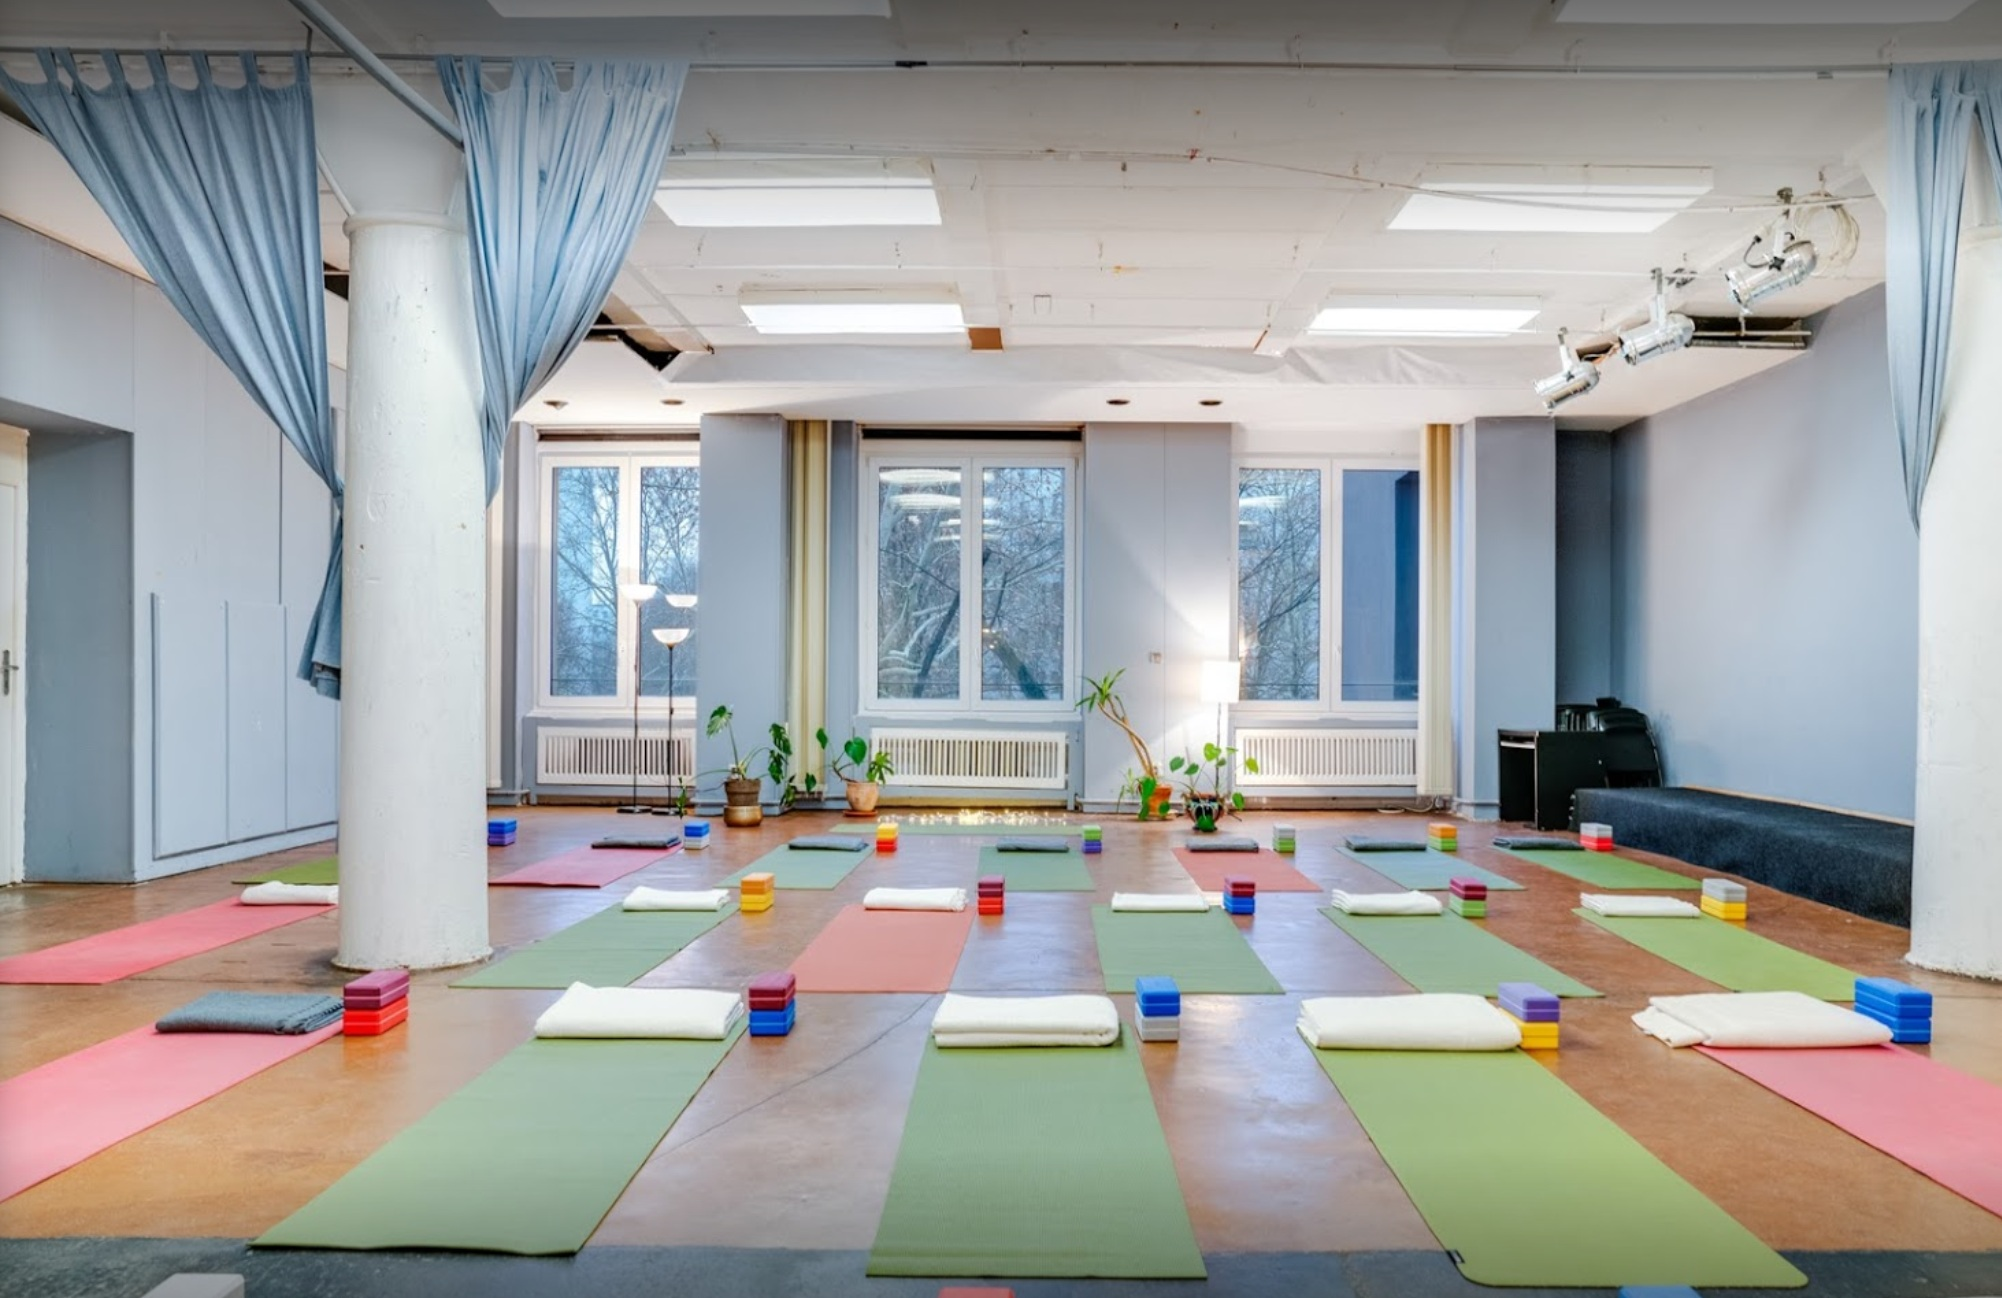 Yoga mats with props and blankets laid out in the spacious and bright HiYoga Berlin room.